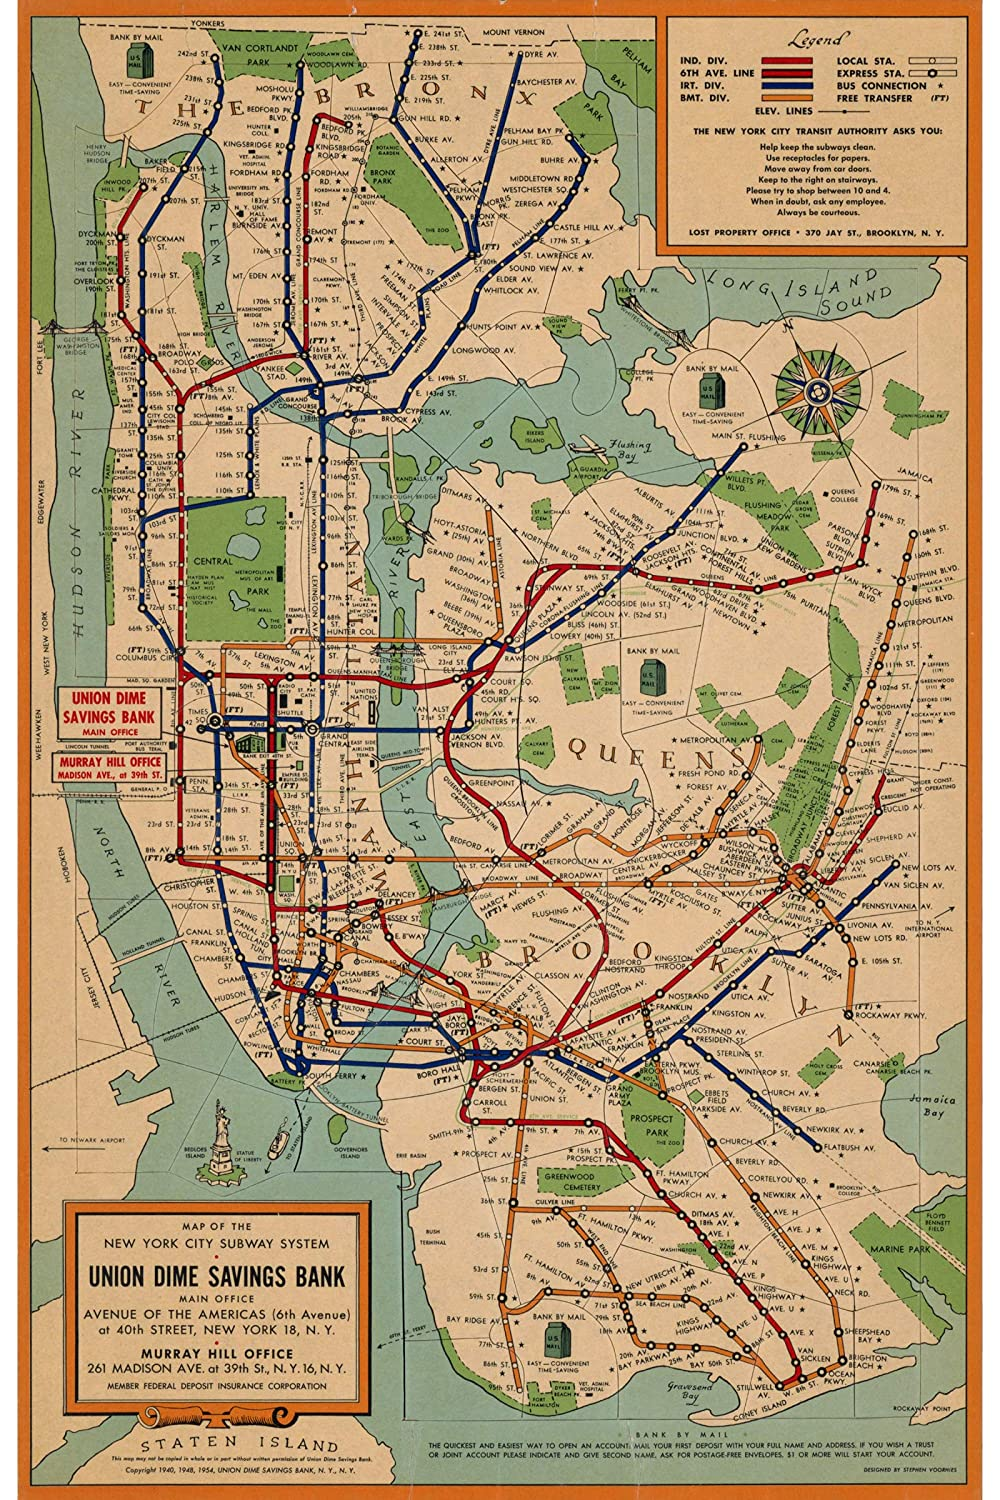 Custom Art Nyc Subway Map.Nyc Subway Map Historical Reproduction Transportation System Created By Union Dime Savings Bank In 1954 Made To Order 16 X 24